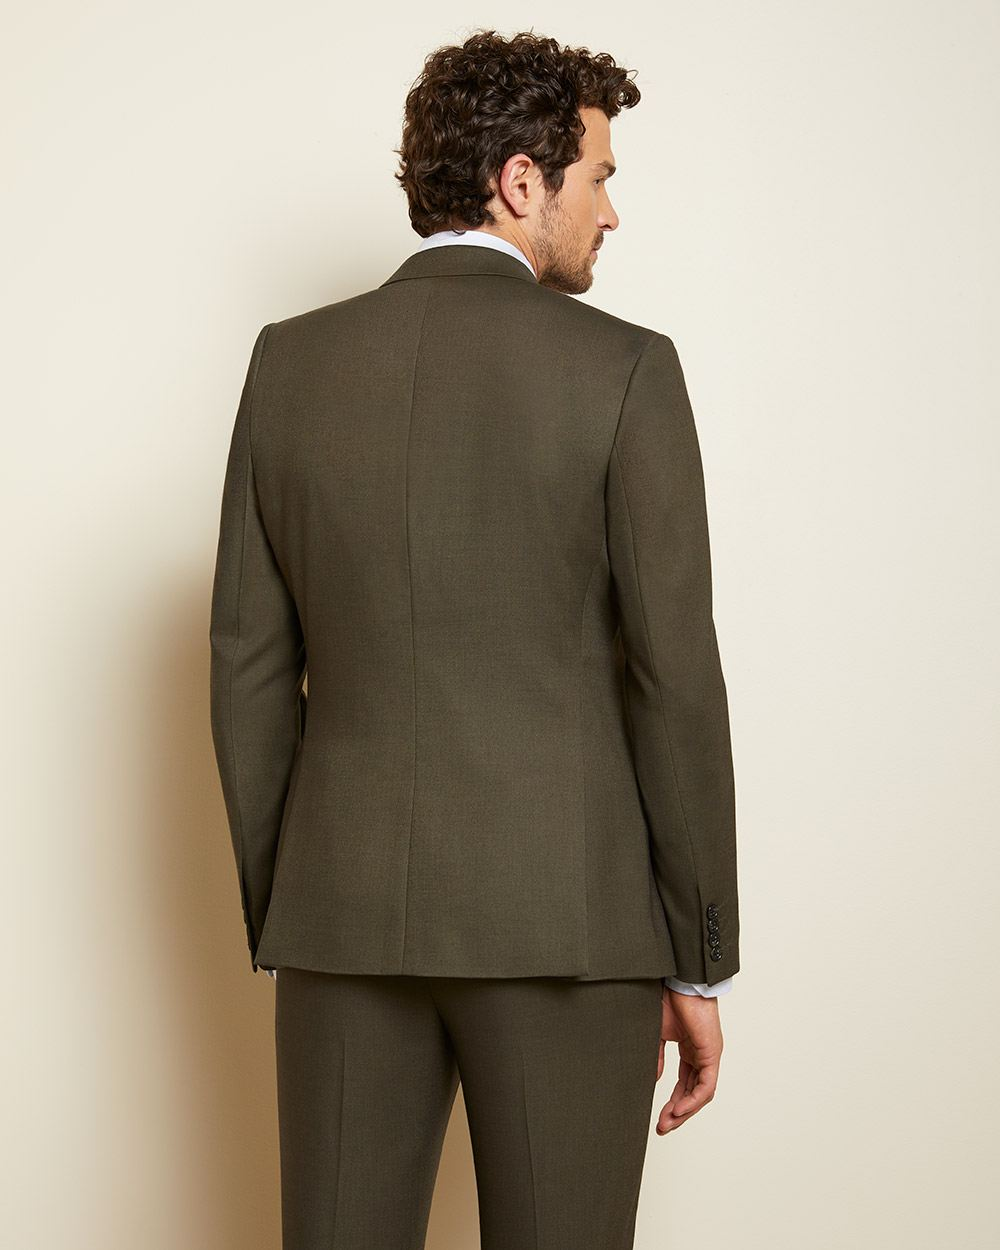 Slim fit Olive green suit blazer